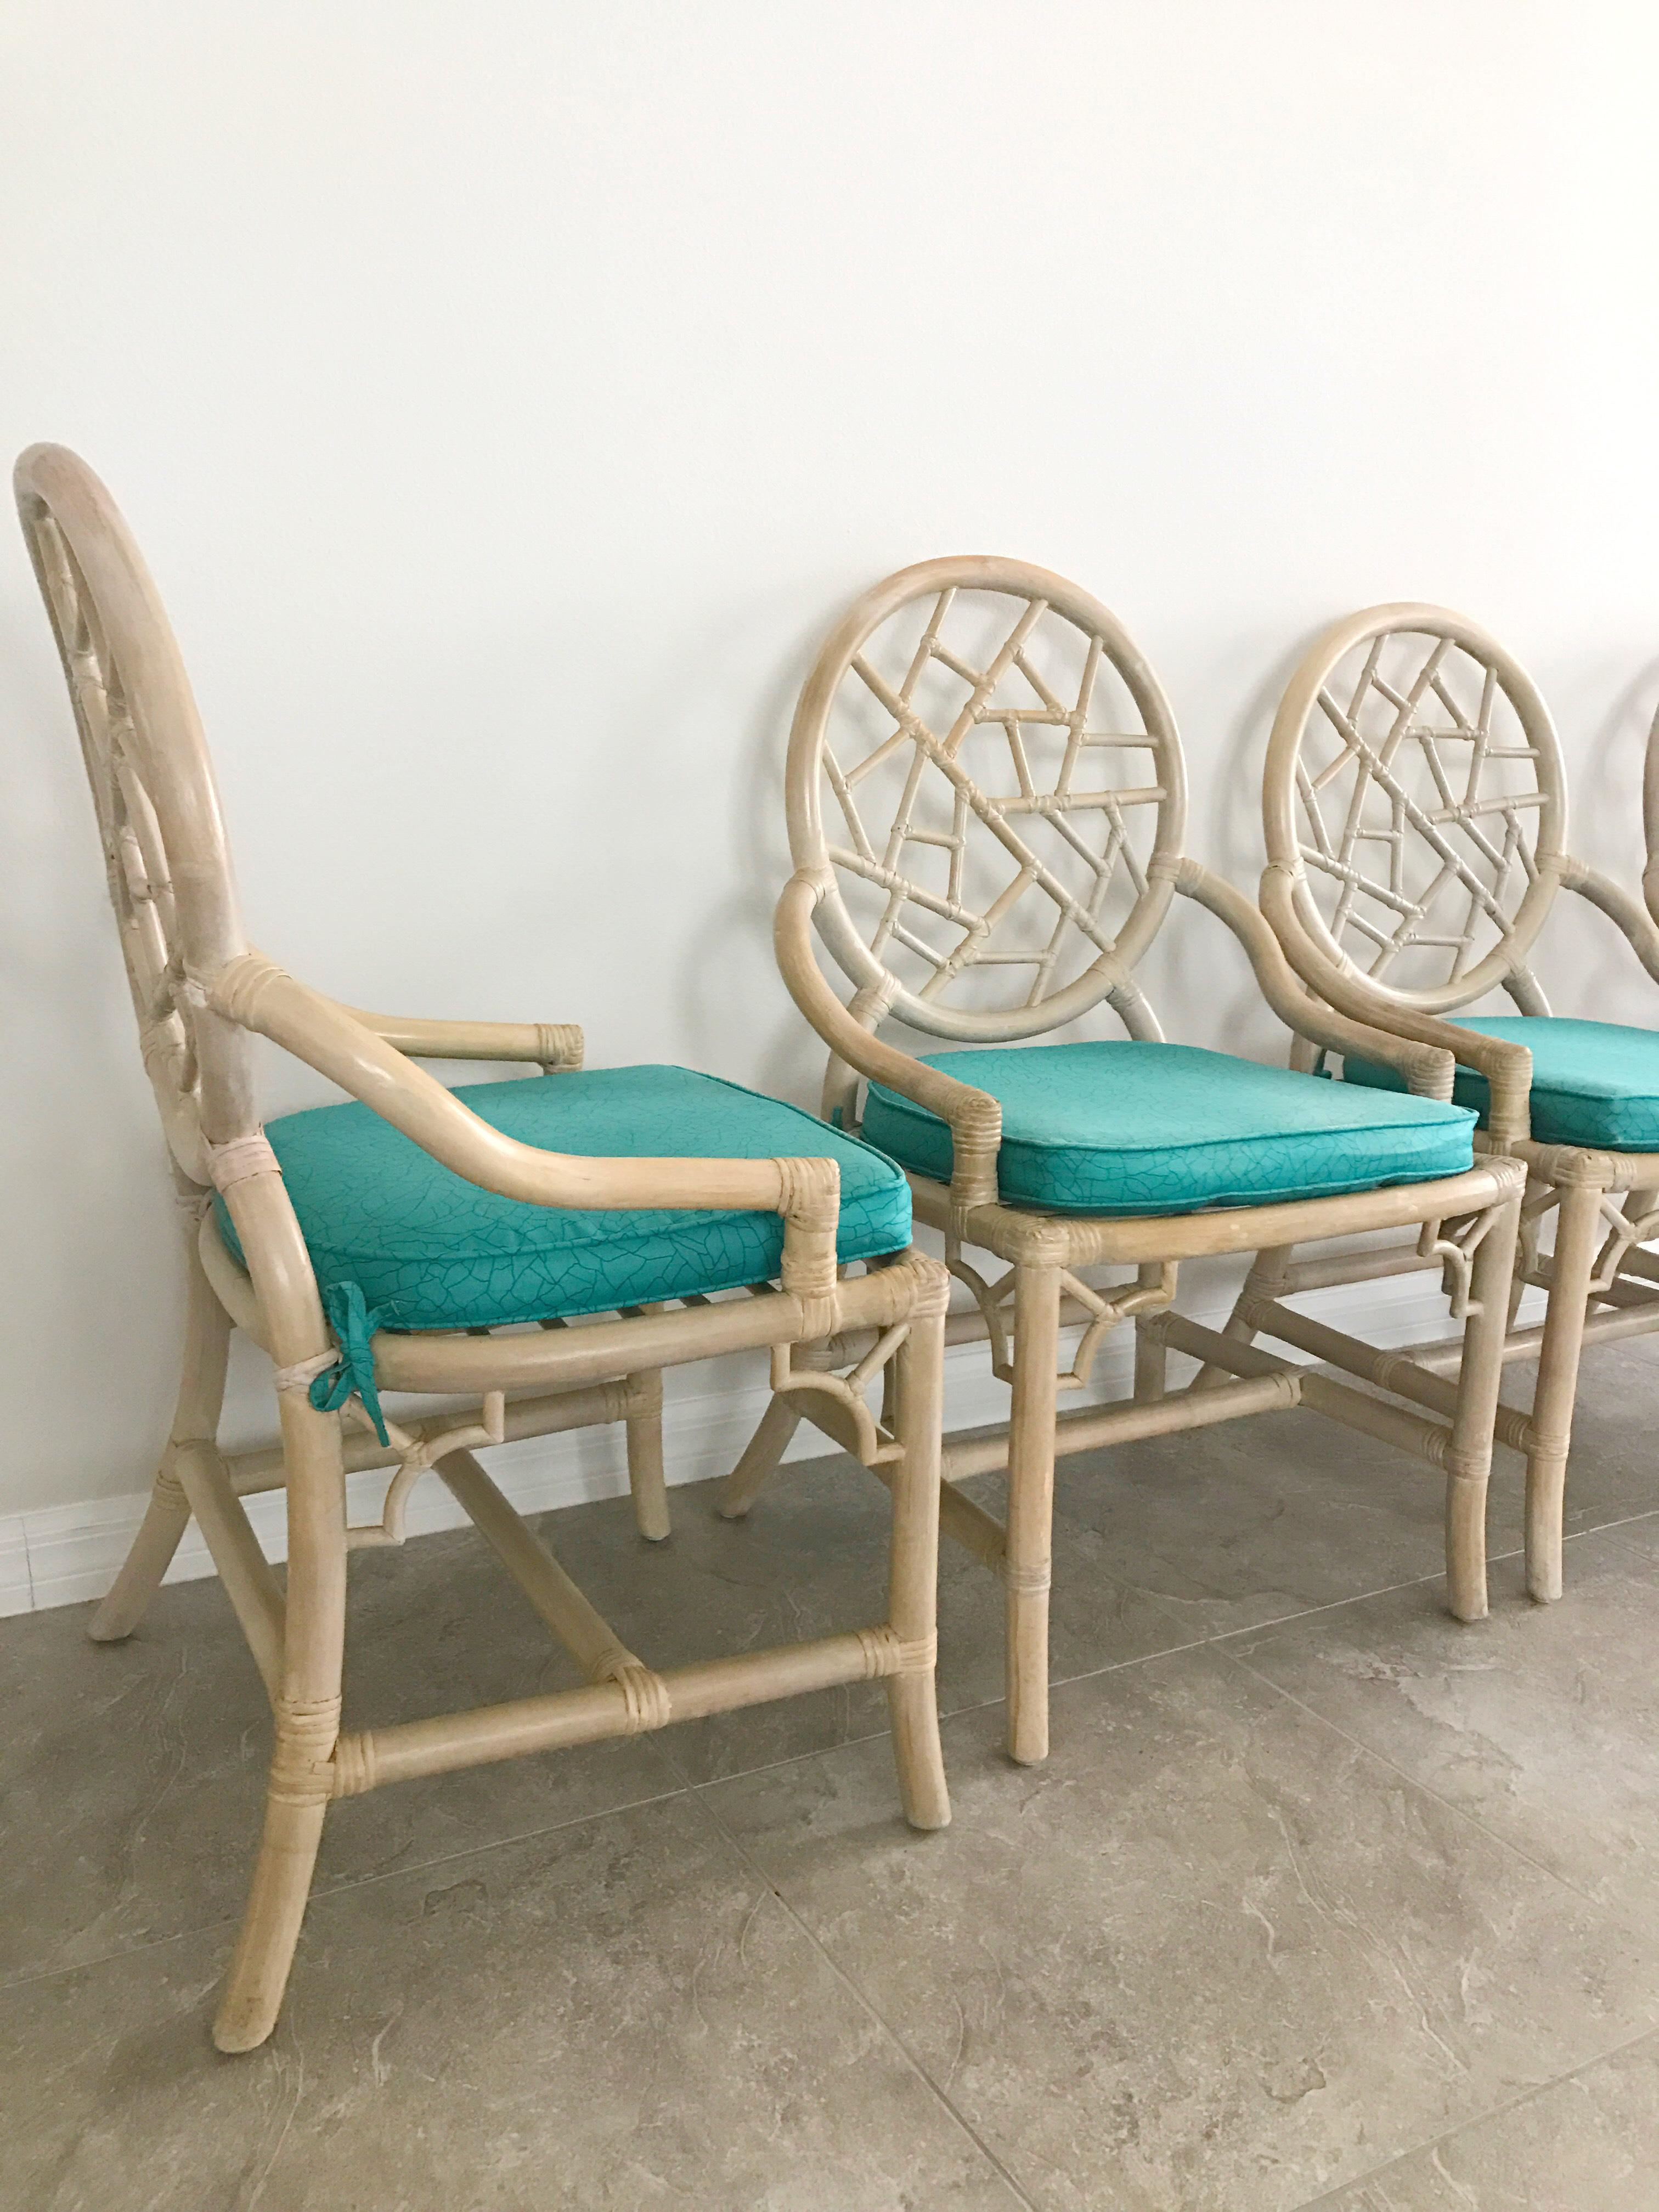 Vintage McGuire Cracked Ice Rattan Chairs   Set Of 4   Image 4 Of 7